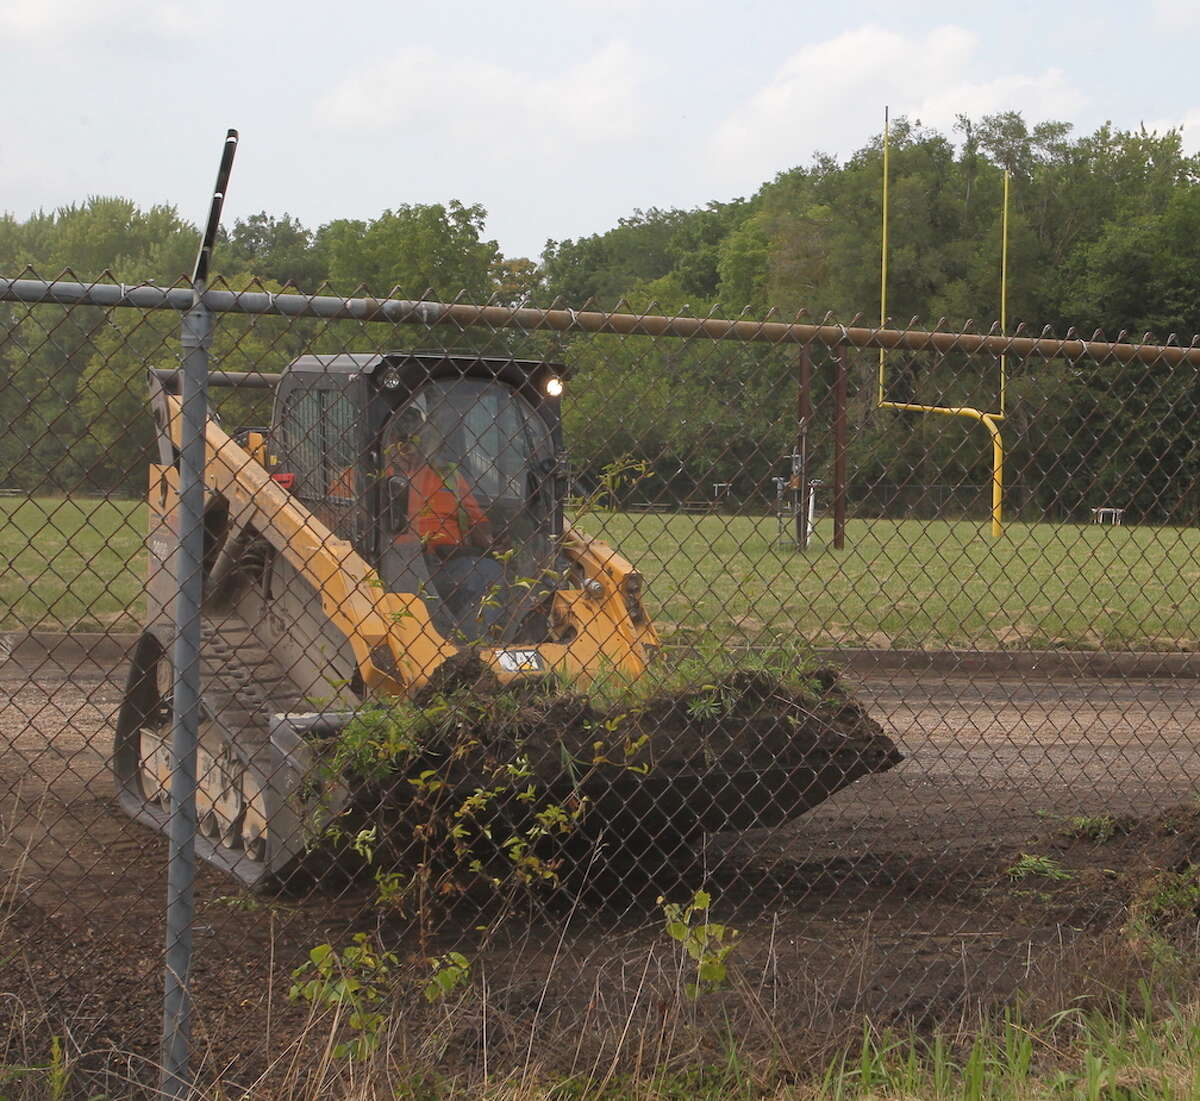 A cinder track, long buried under a layer of dirt and weeds, is getting new life for Our Saviour School and Routt Catholic High School athletes.